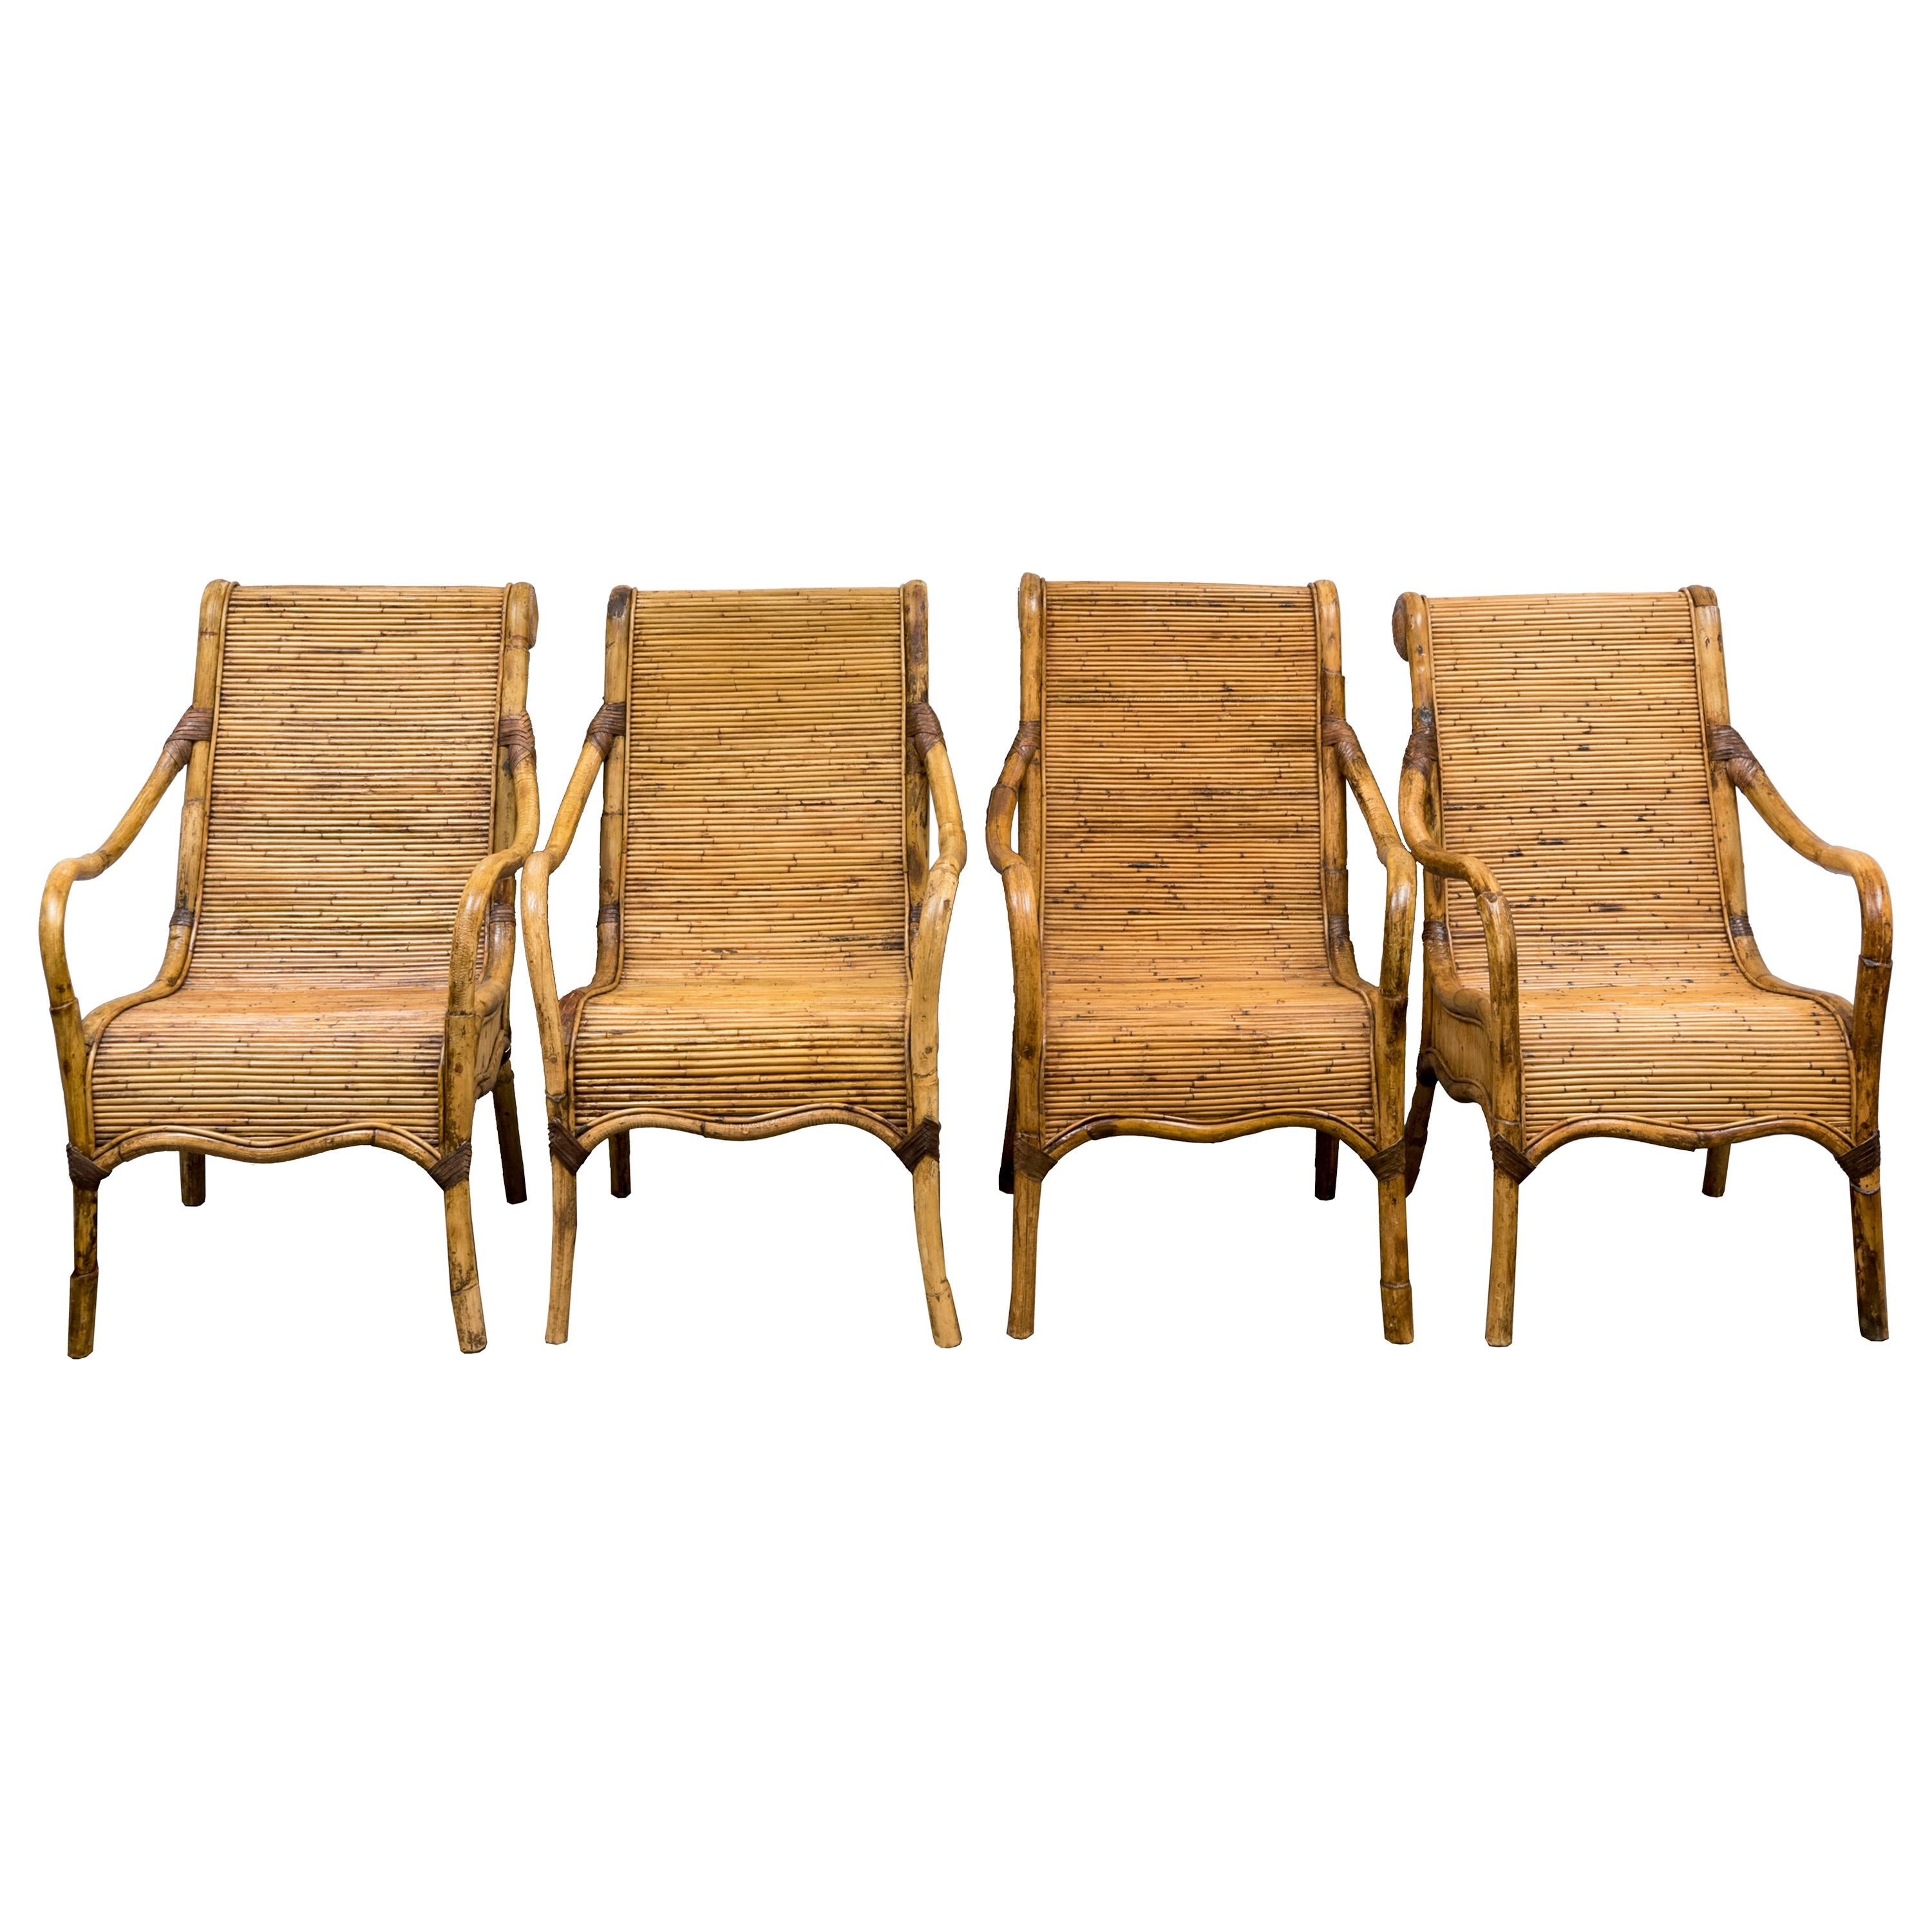 Set of Four Armchairs in Rattan